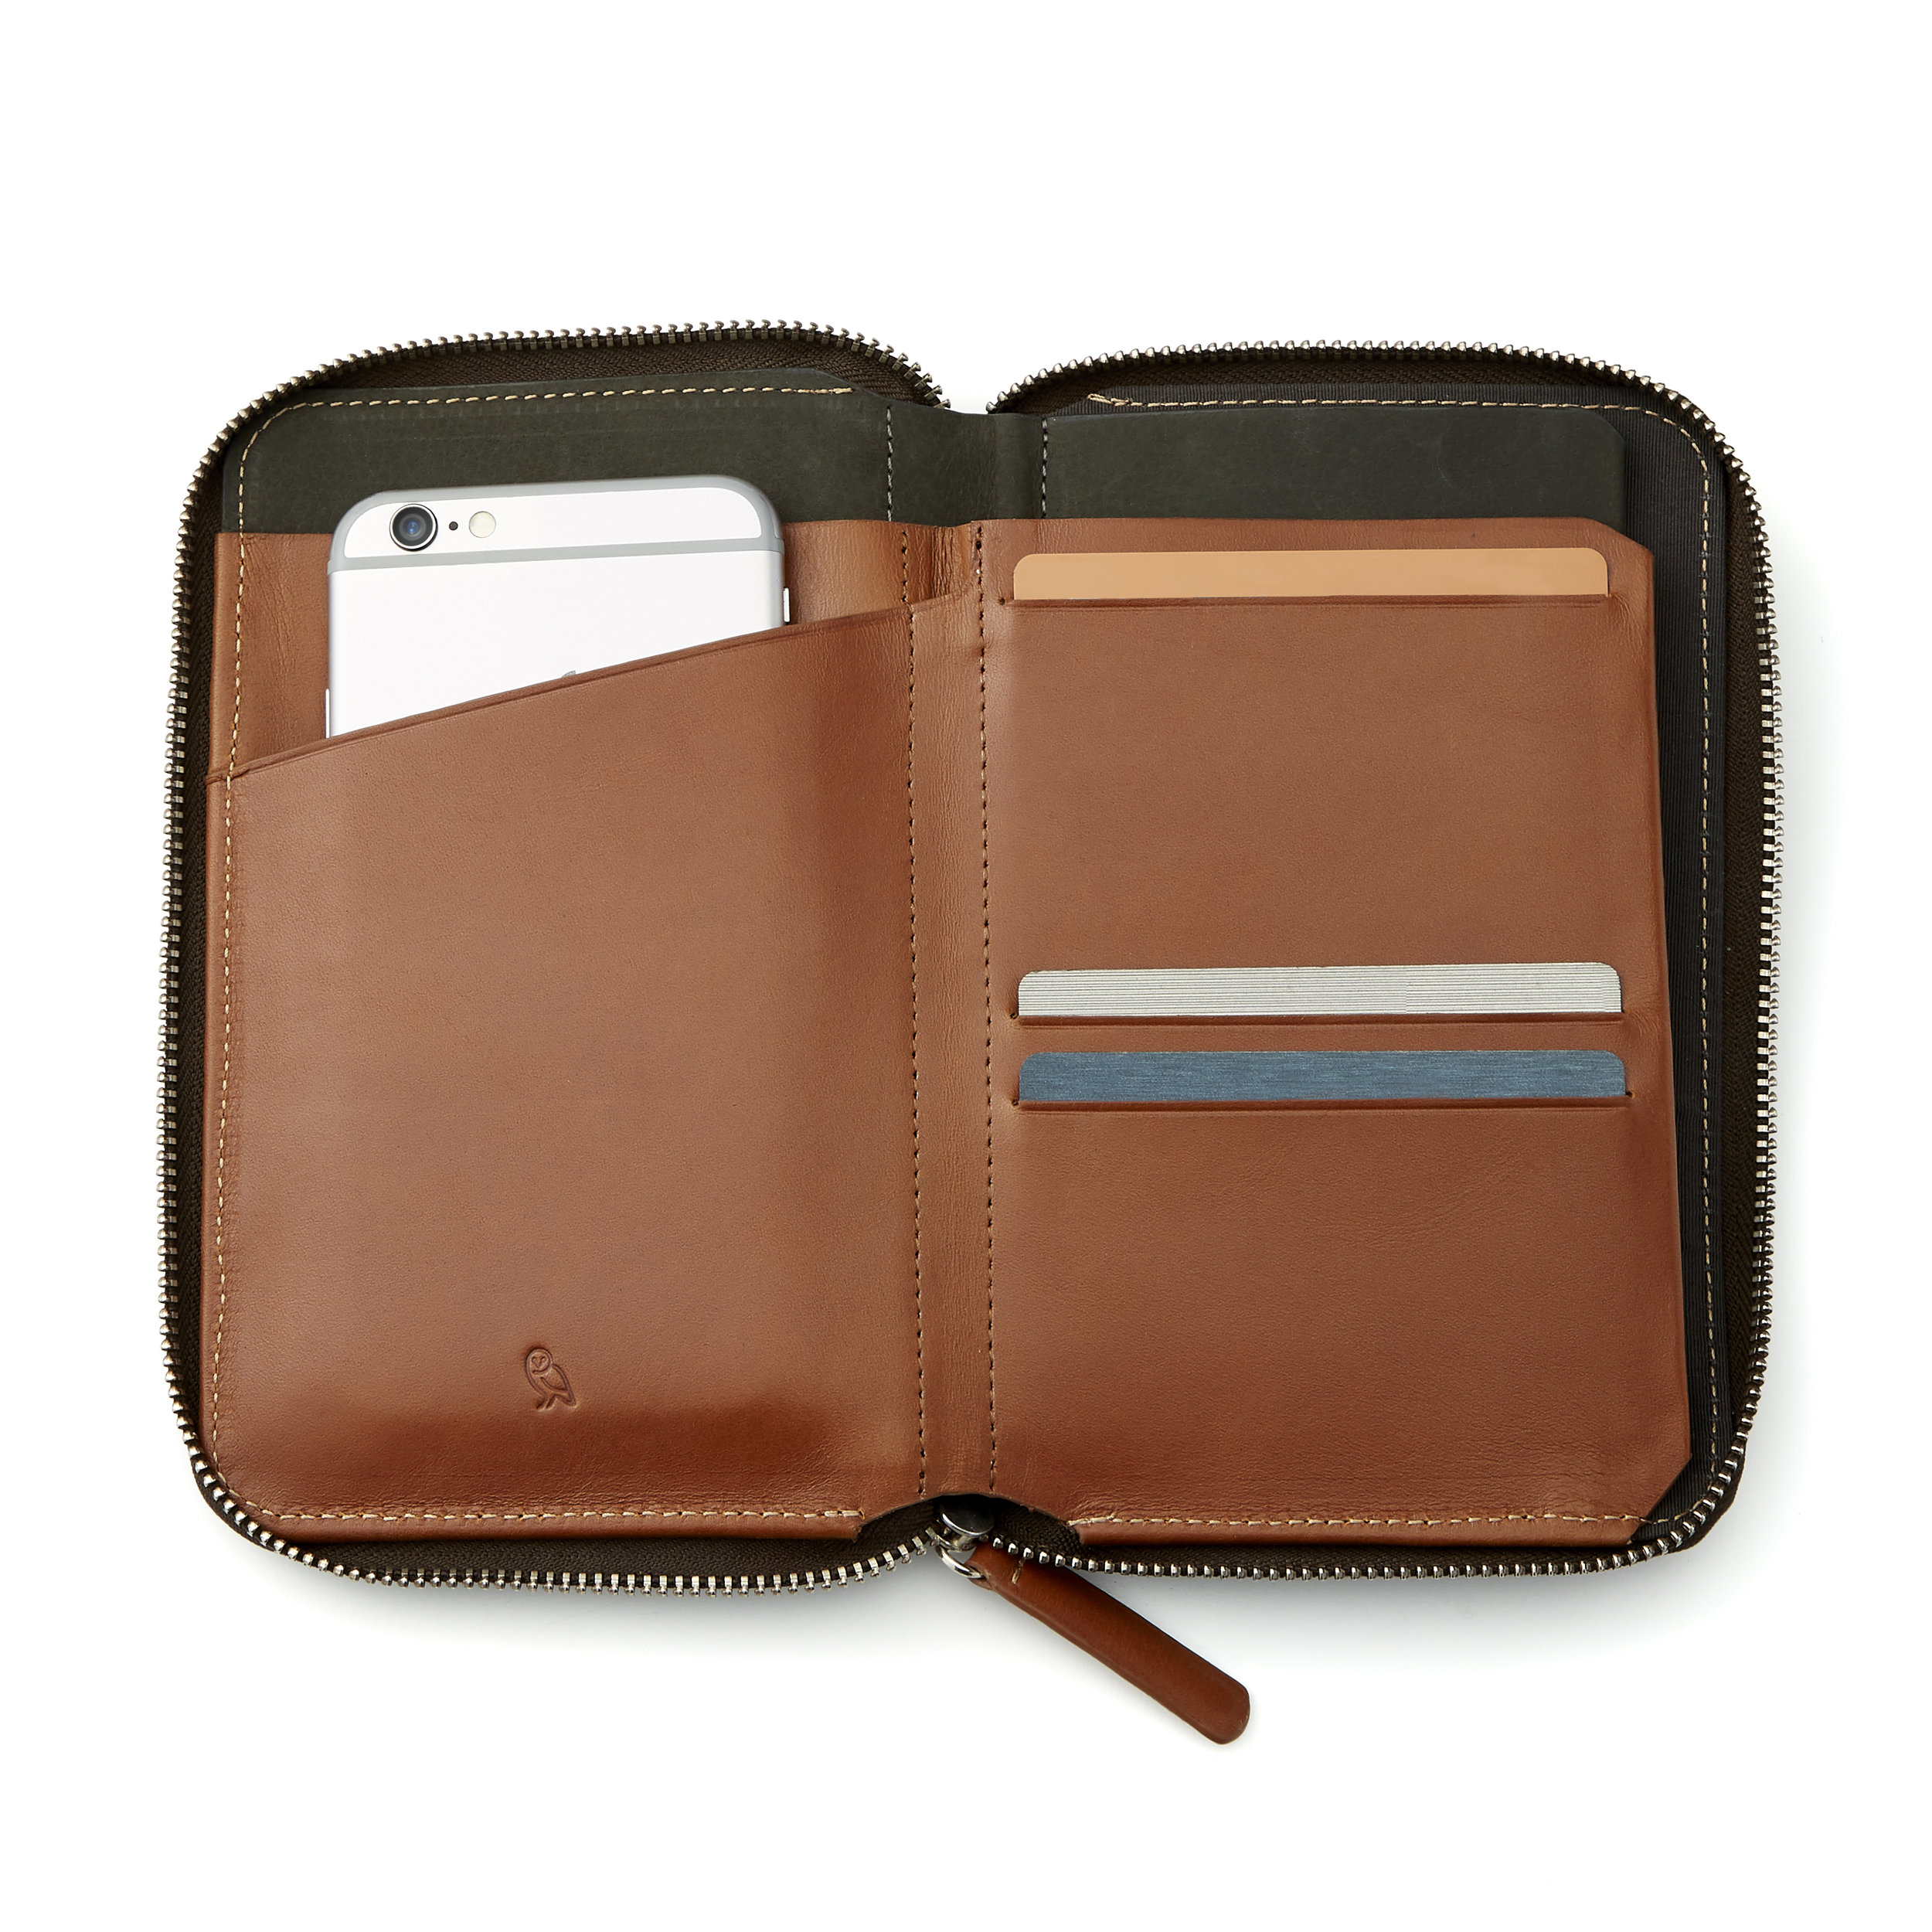 Bellroy Travel Folio - Another great leather organizer from Bellroy. Six to eight cards and has a dedicated sleeve for your passport.